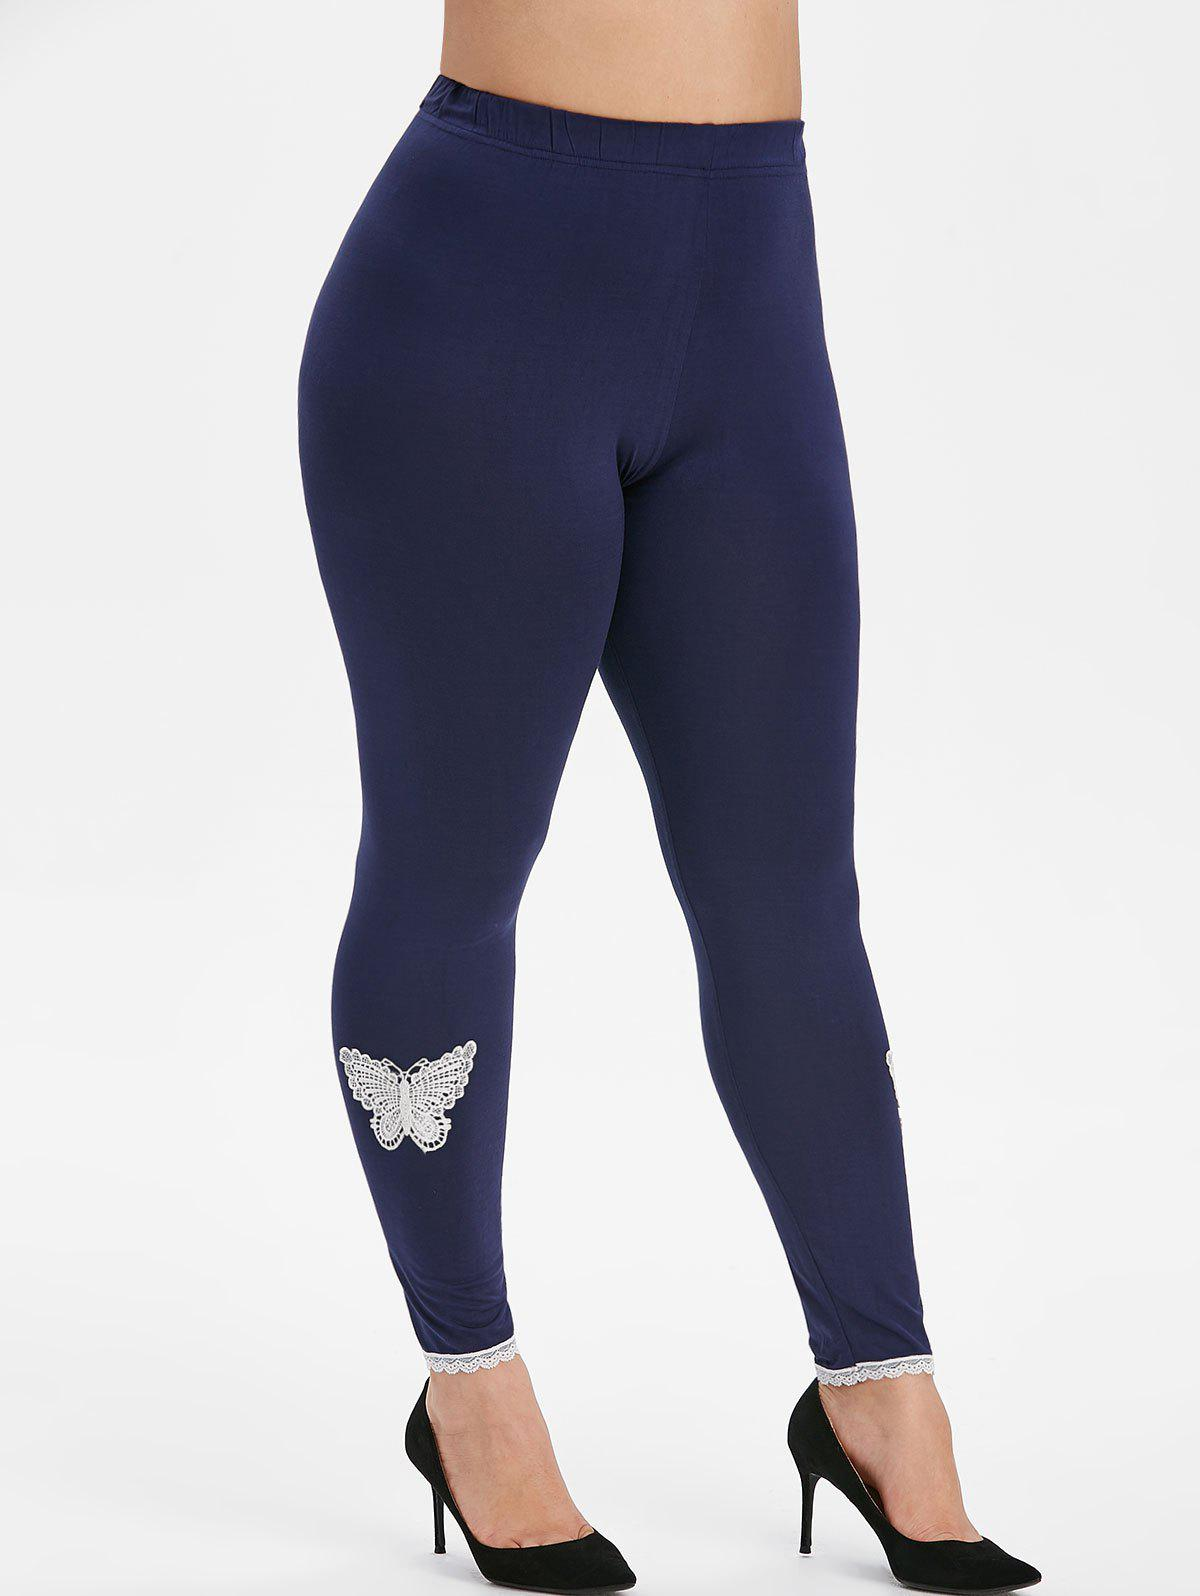 Butterfly Lace Panel High Waisted Plus Size Leggings - CADETBLUE 4X